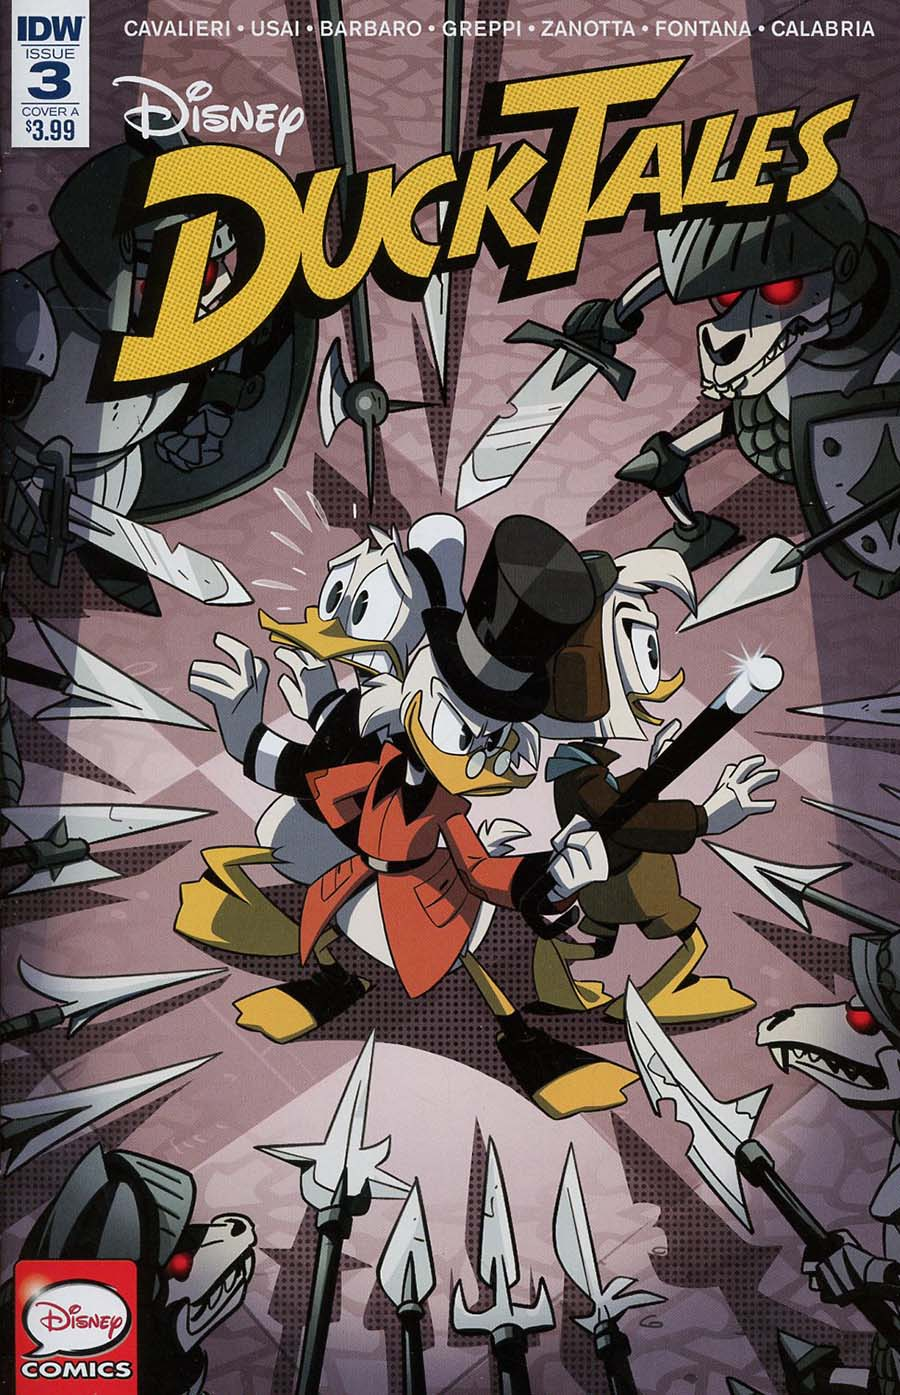 Ducktales Vol 4 #3 Cover A Regular Marco Ghiglione Cover